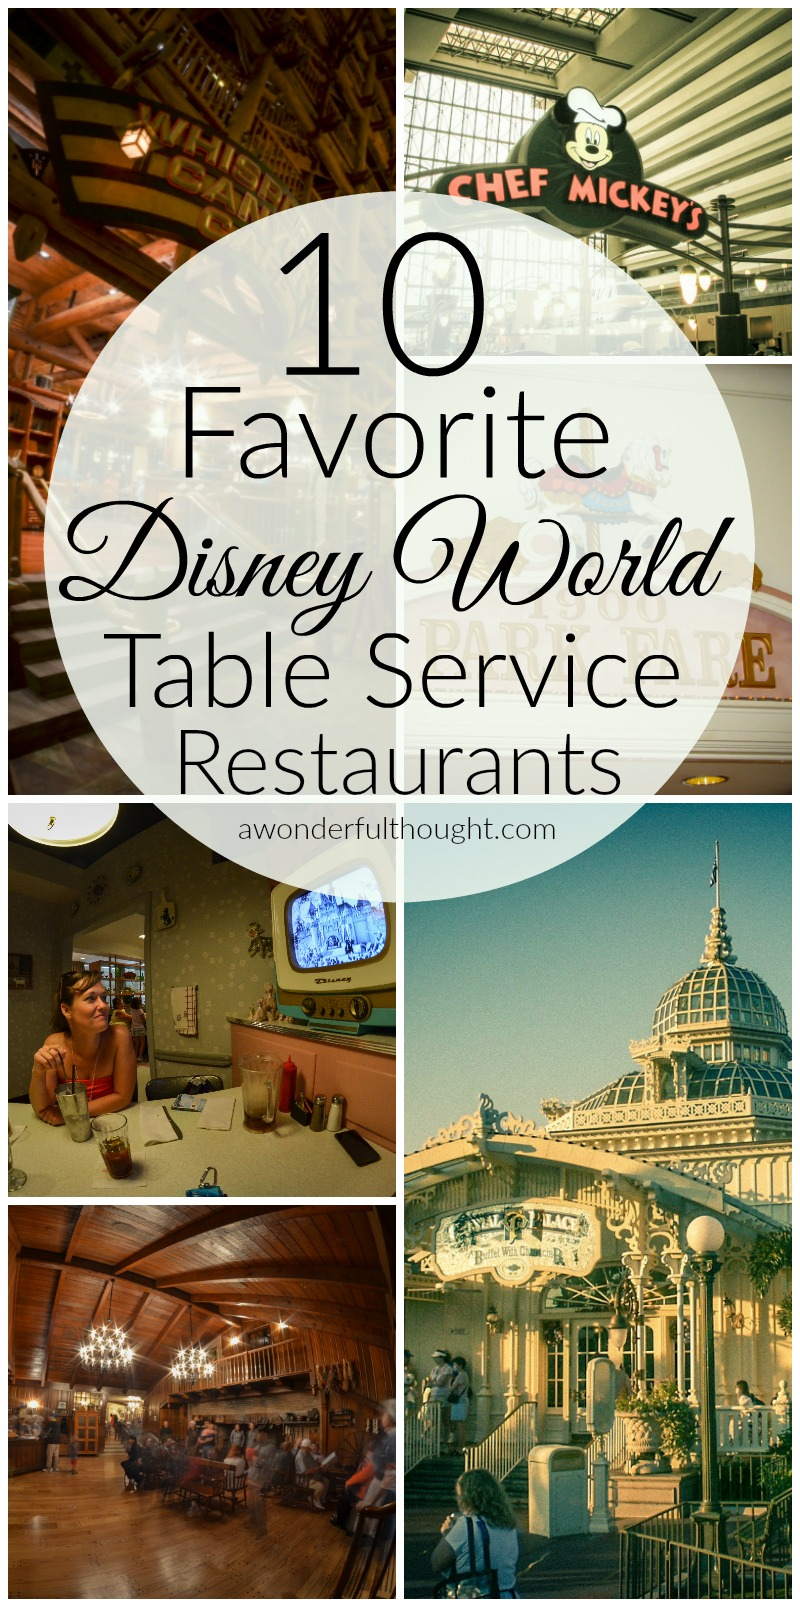 Our 10 Favorite Disney World Table Service Restaurants